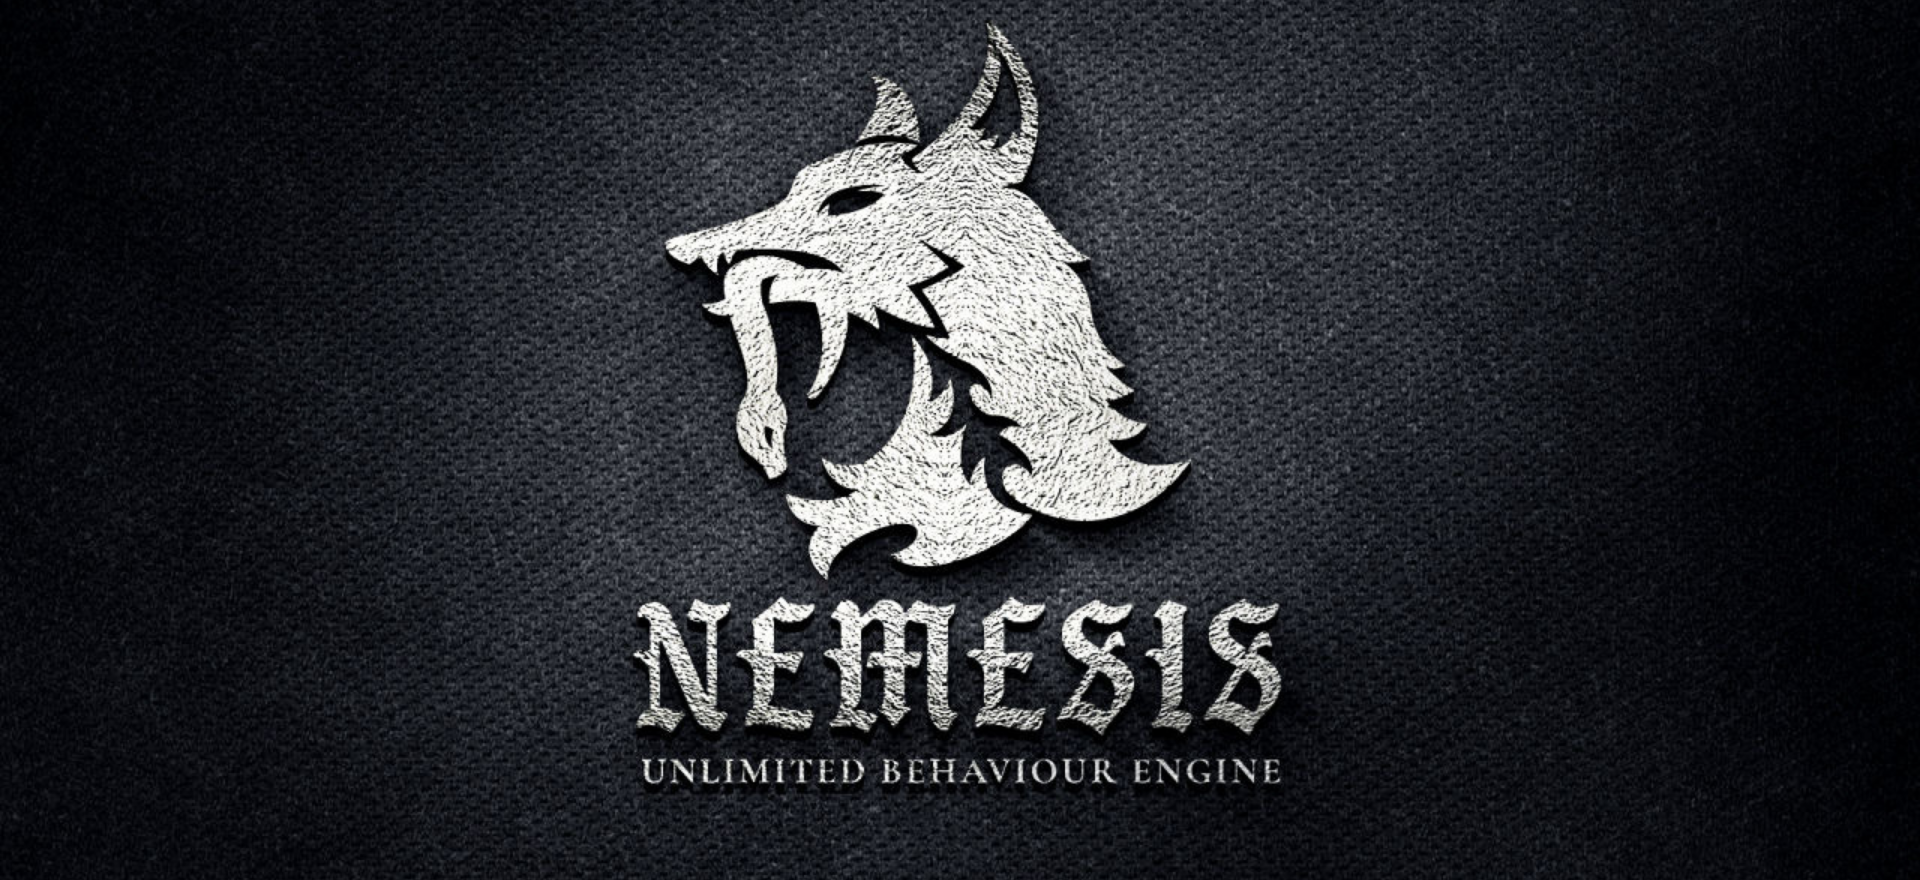 Nemesis Unlimited Behavior Engine